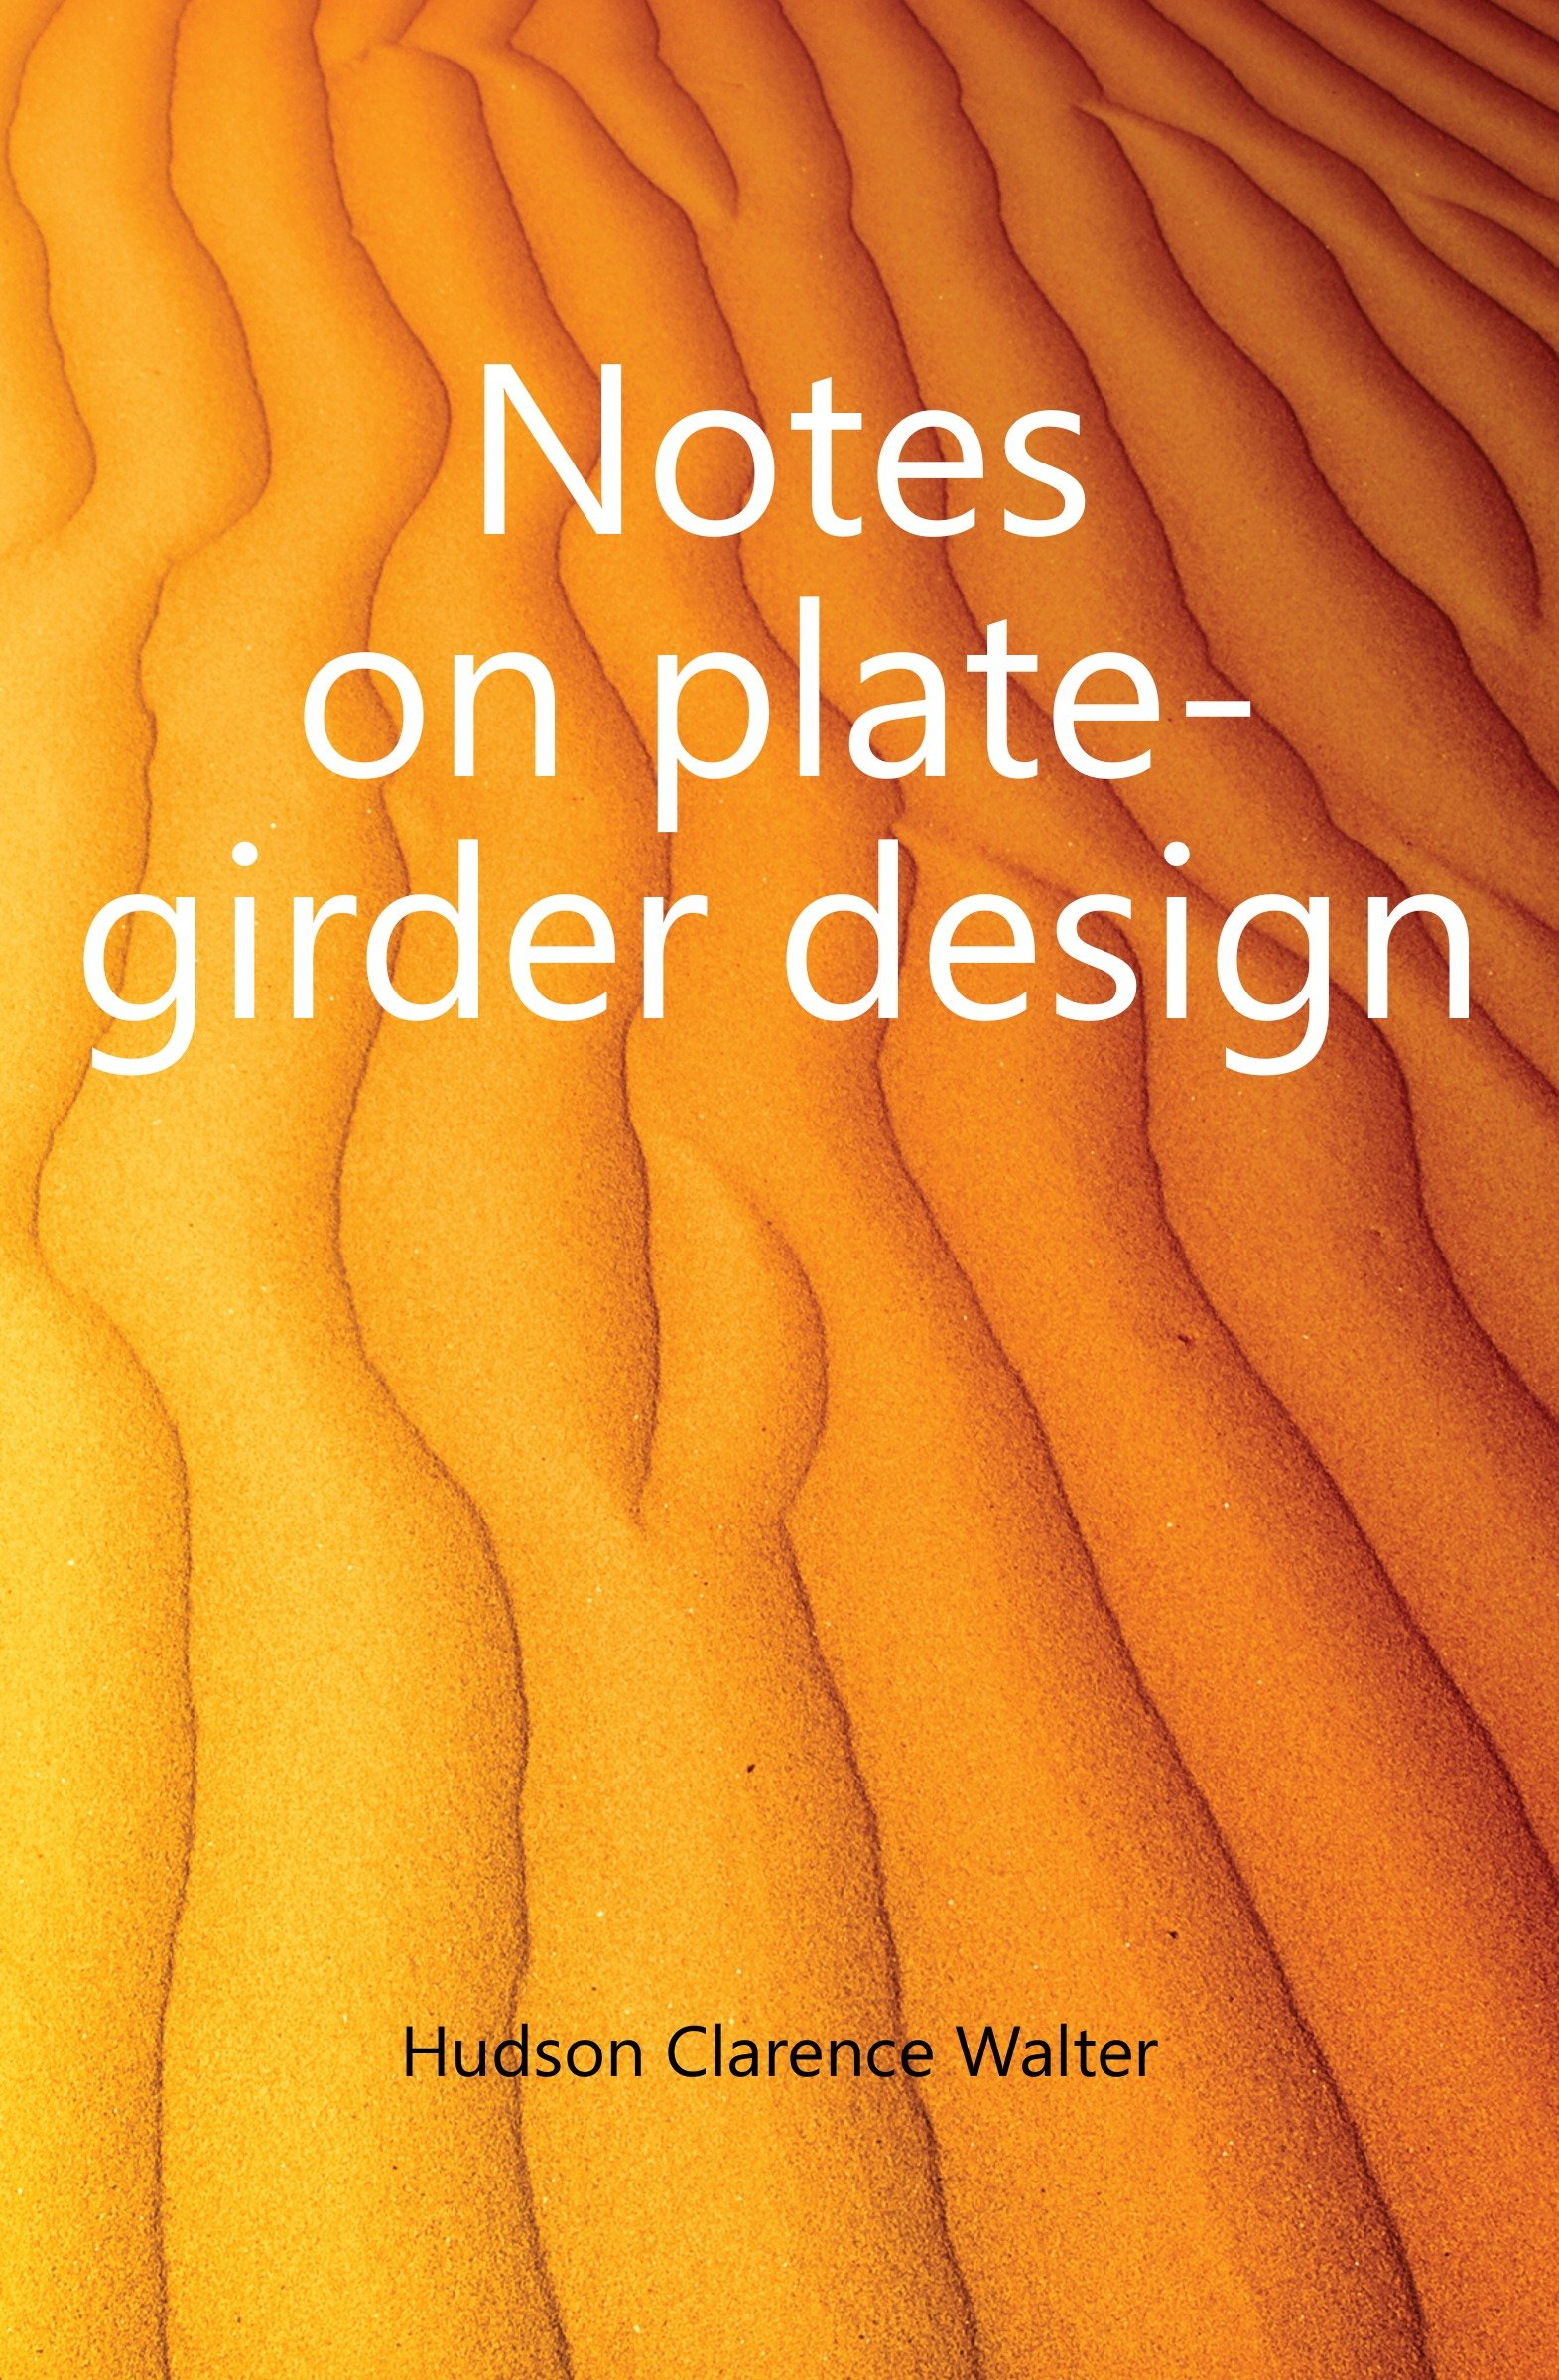 Notes on plate-girder design: Hudson Clarence Walter: Amazon com: Books